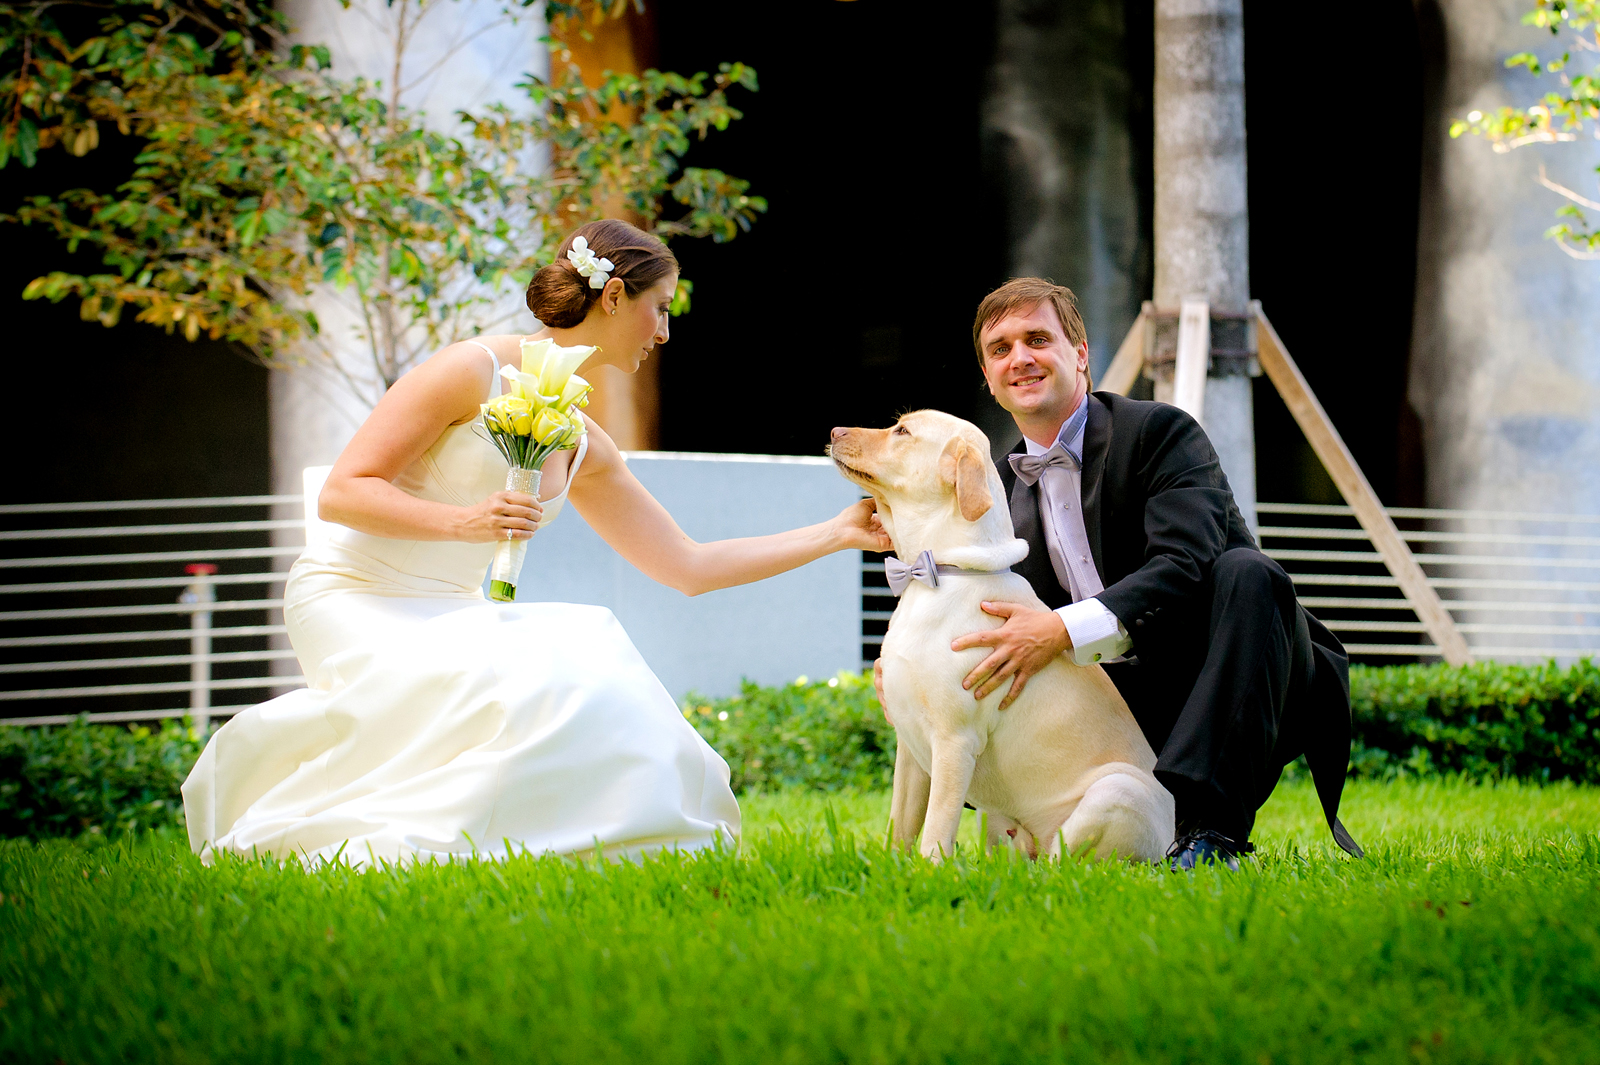 Wedding Photographer Serving Miami Fl Nisso Studios